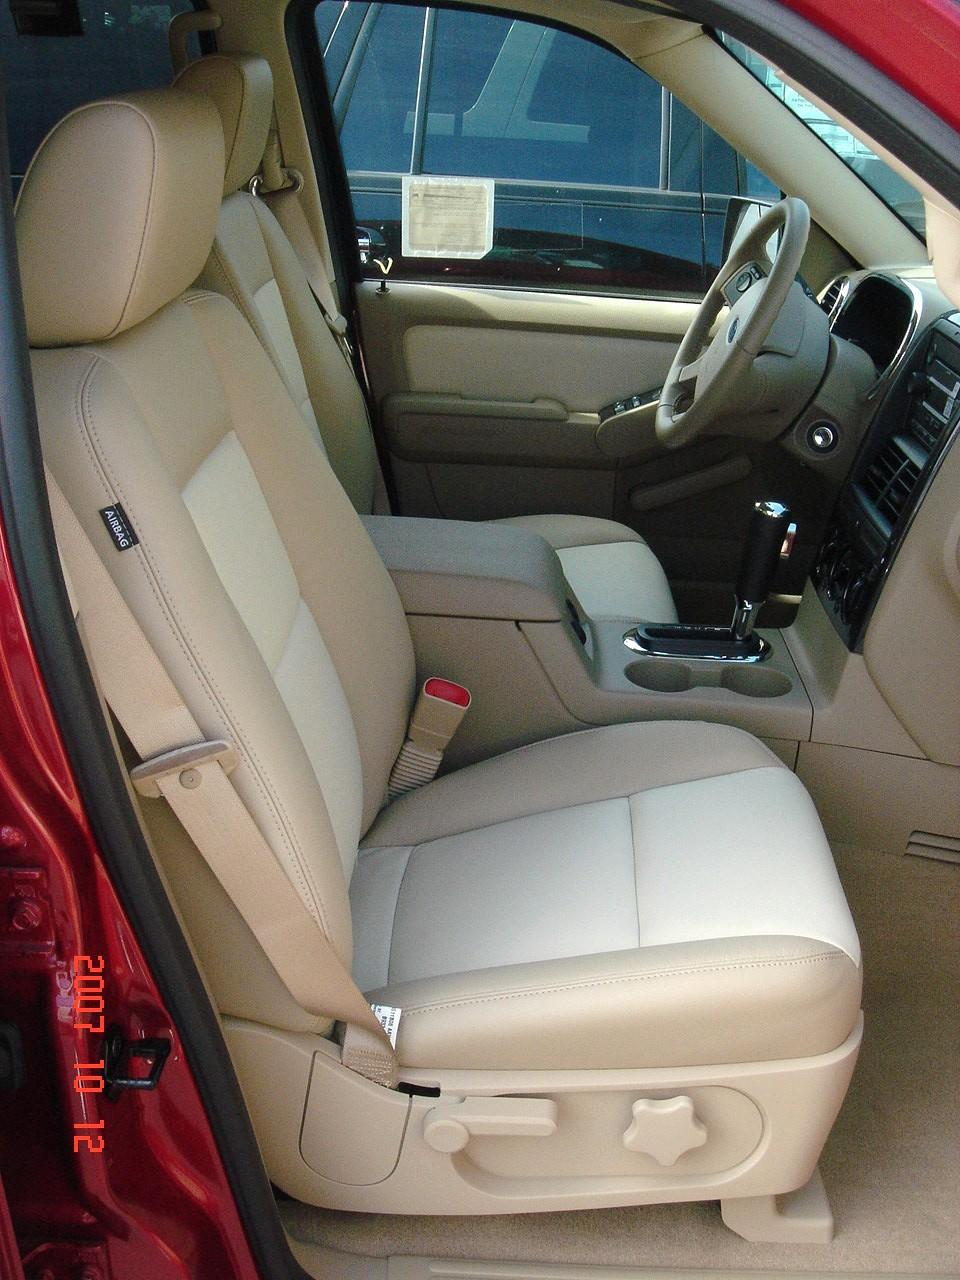 2010 Ford Explorer Seat Covers Velcromag